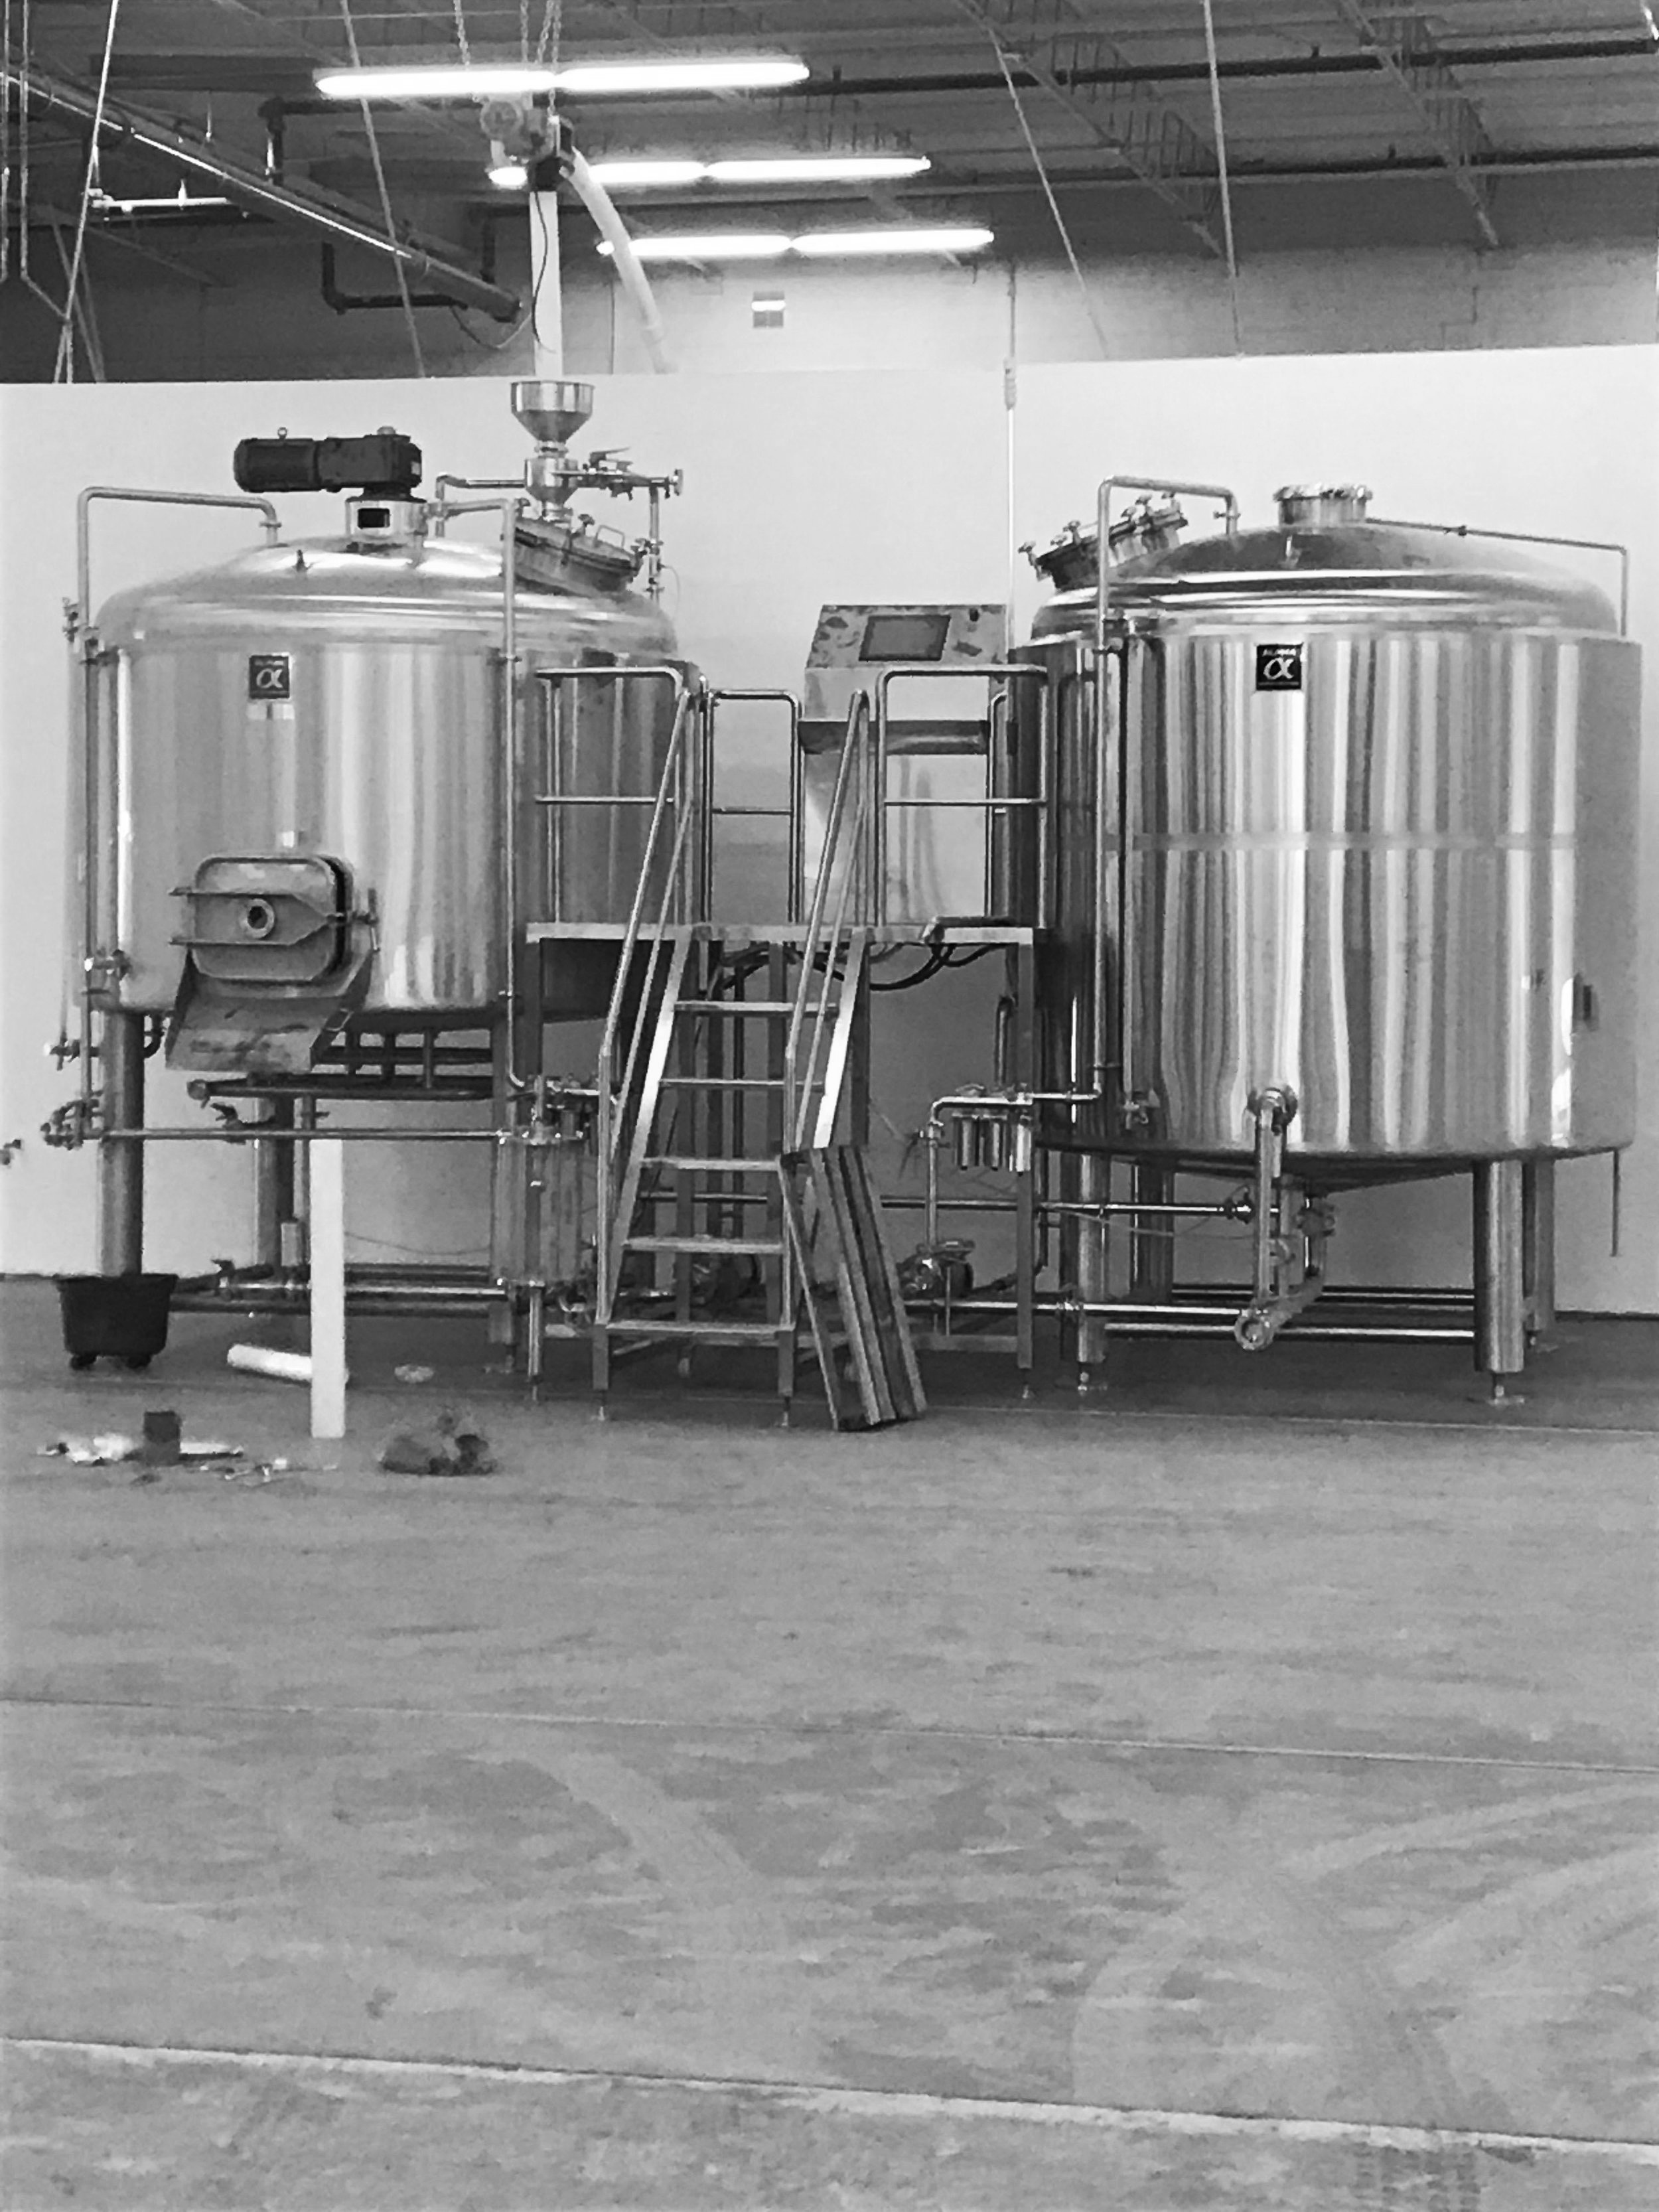 Think of all the beer we can make in here.